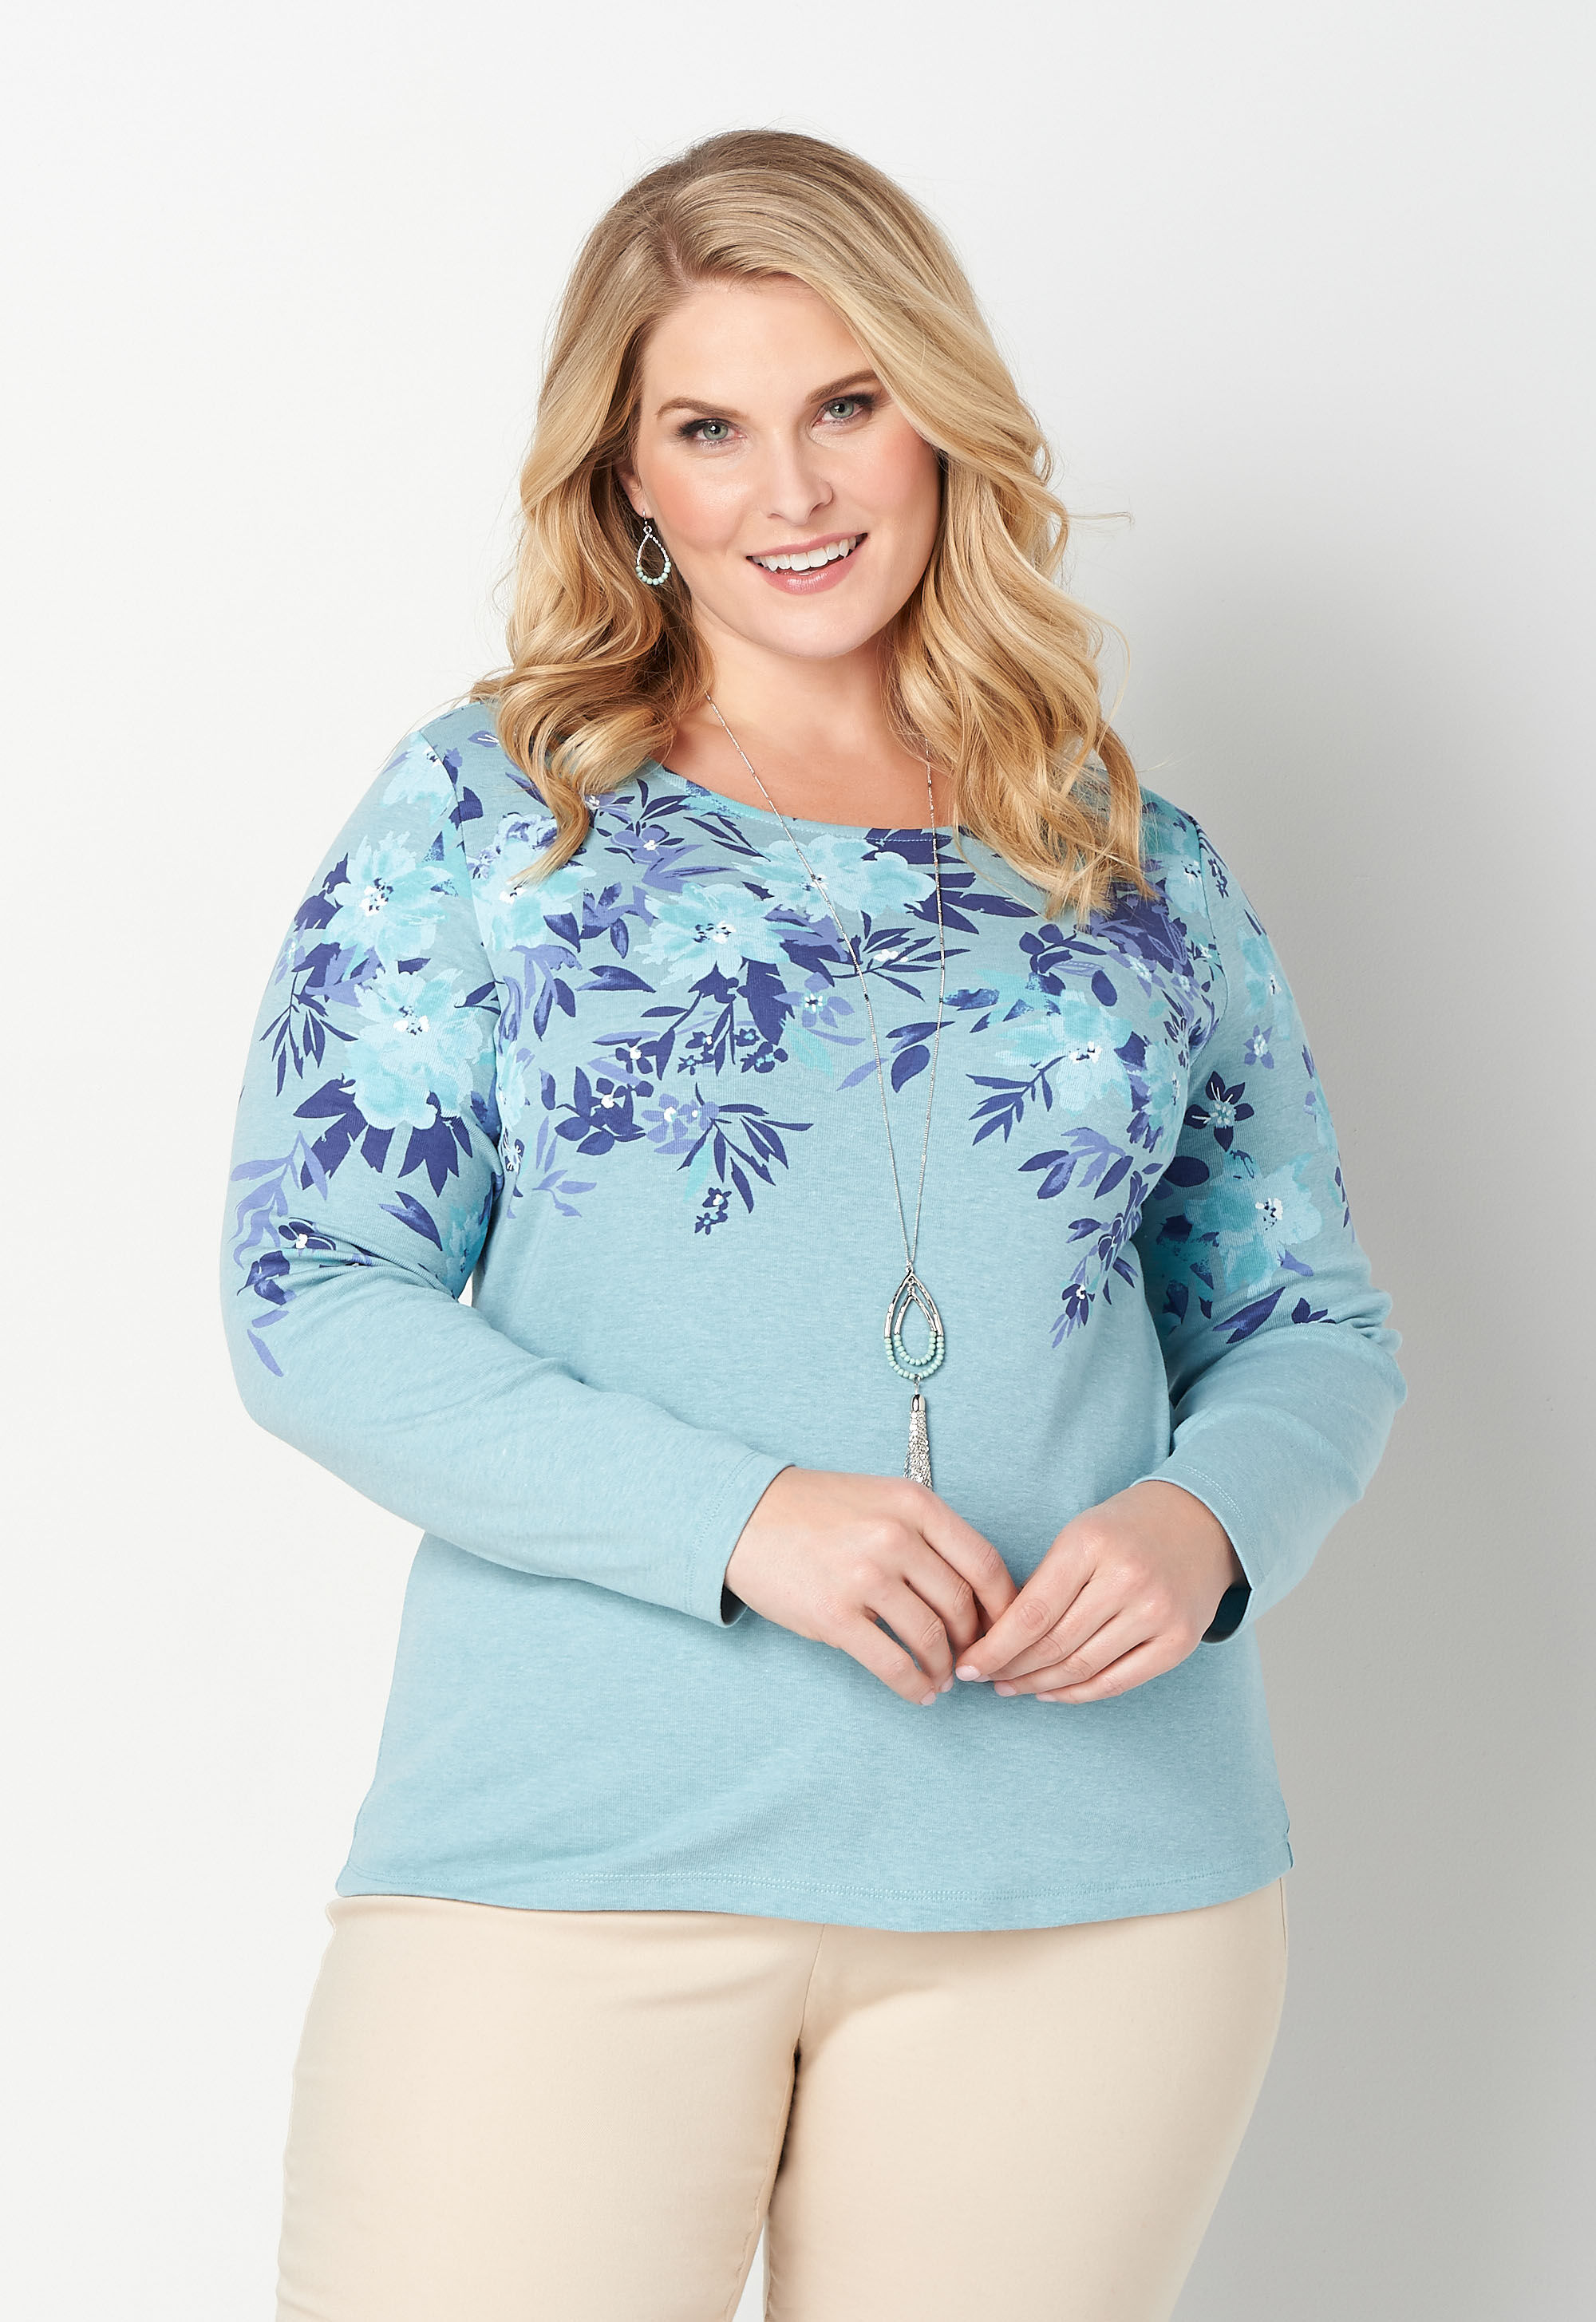 Falling Floral Heather Tee 9